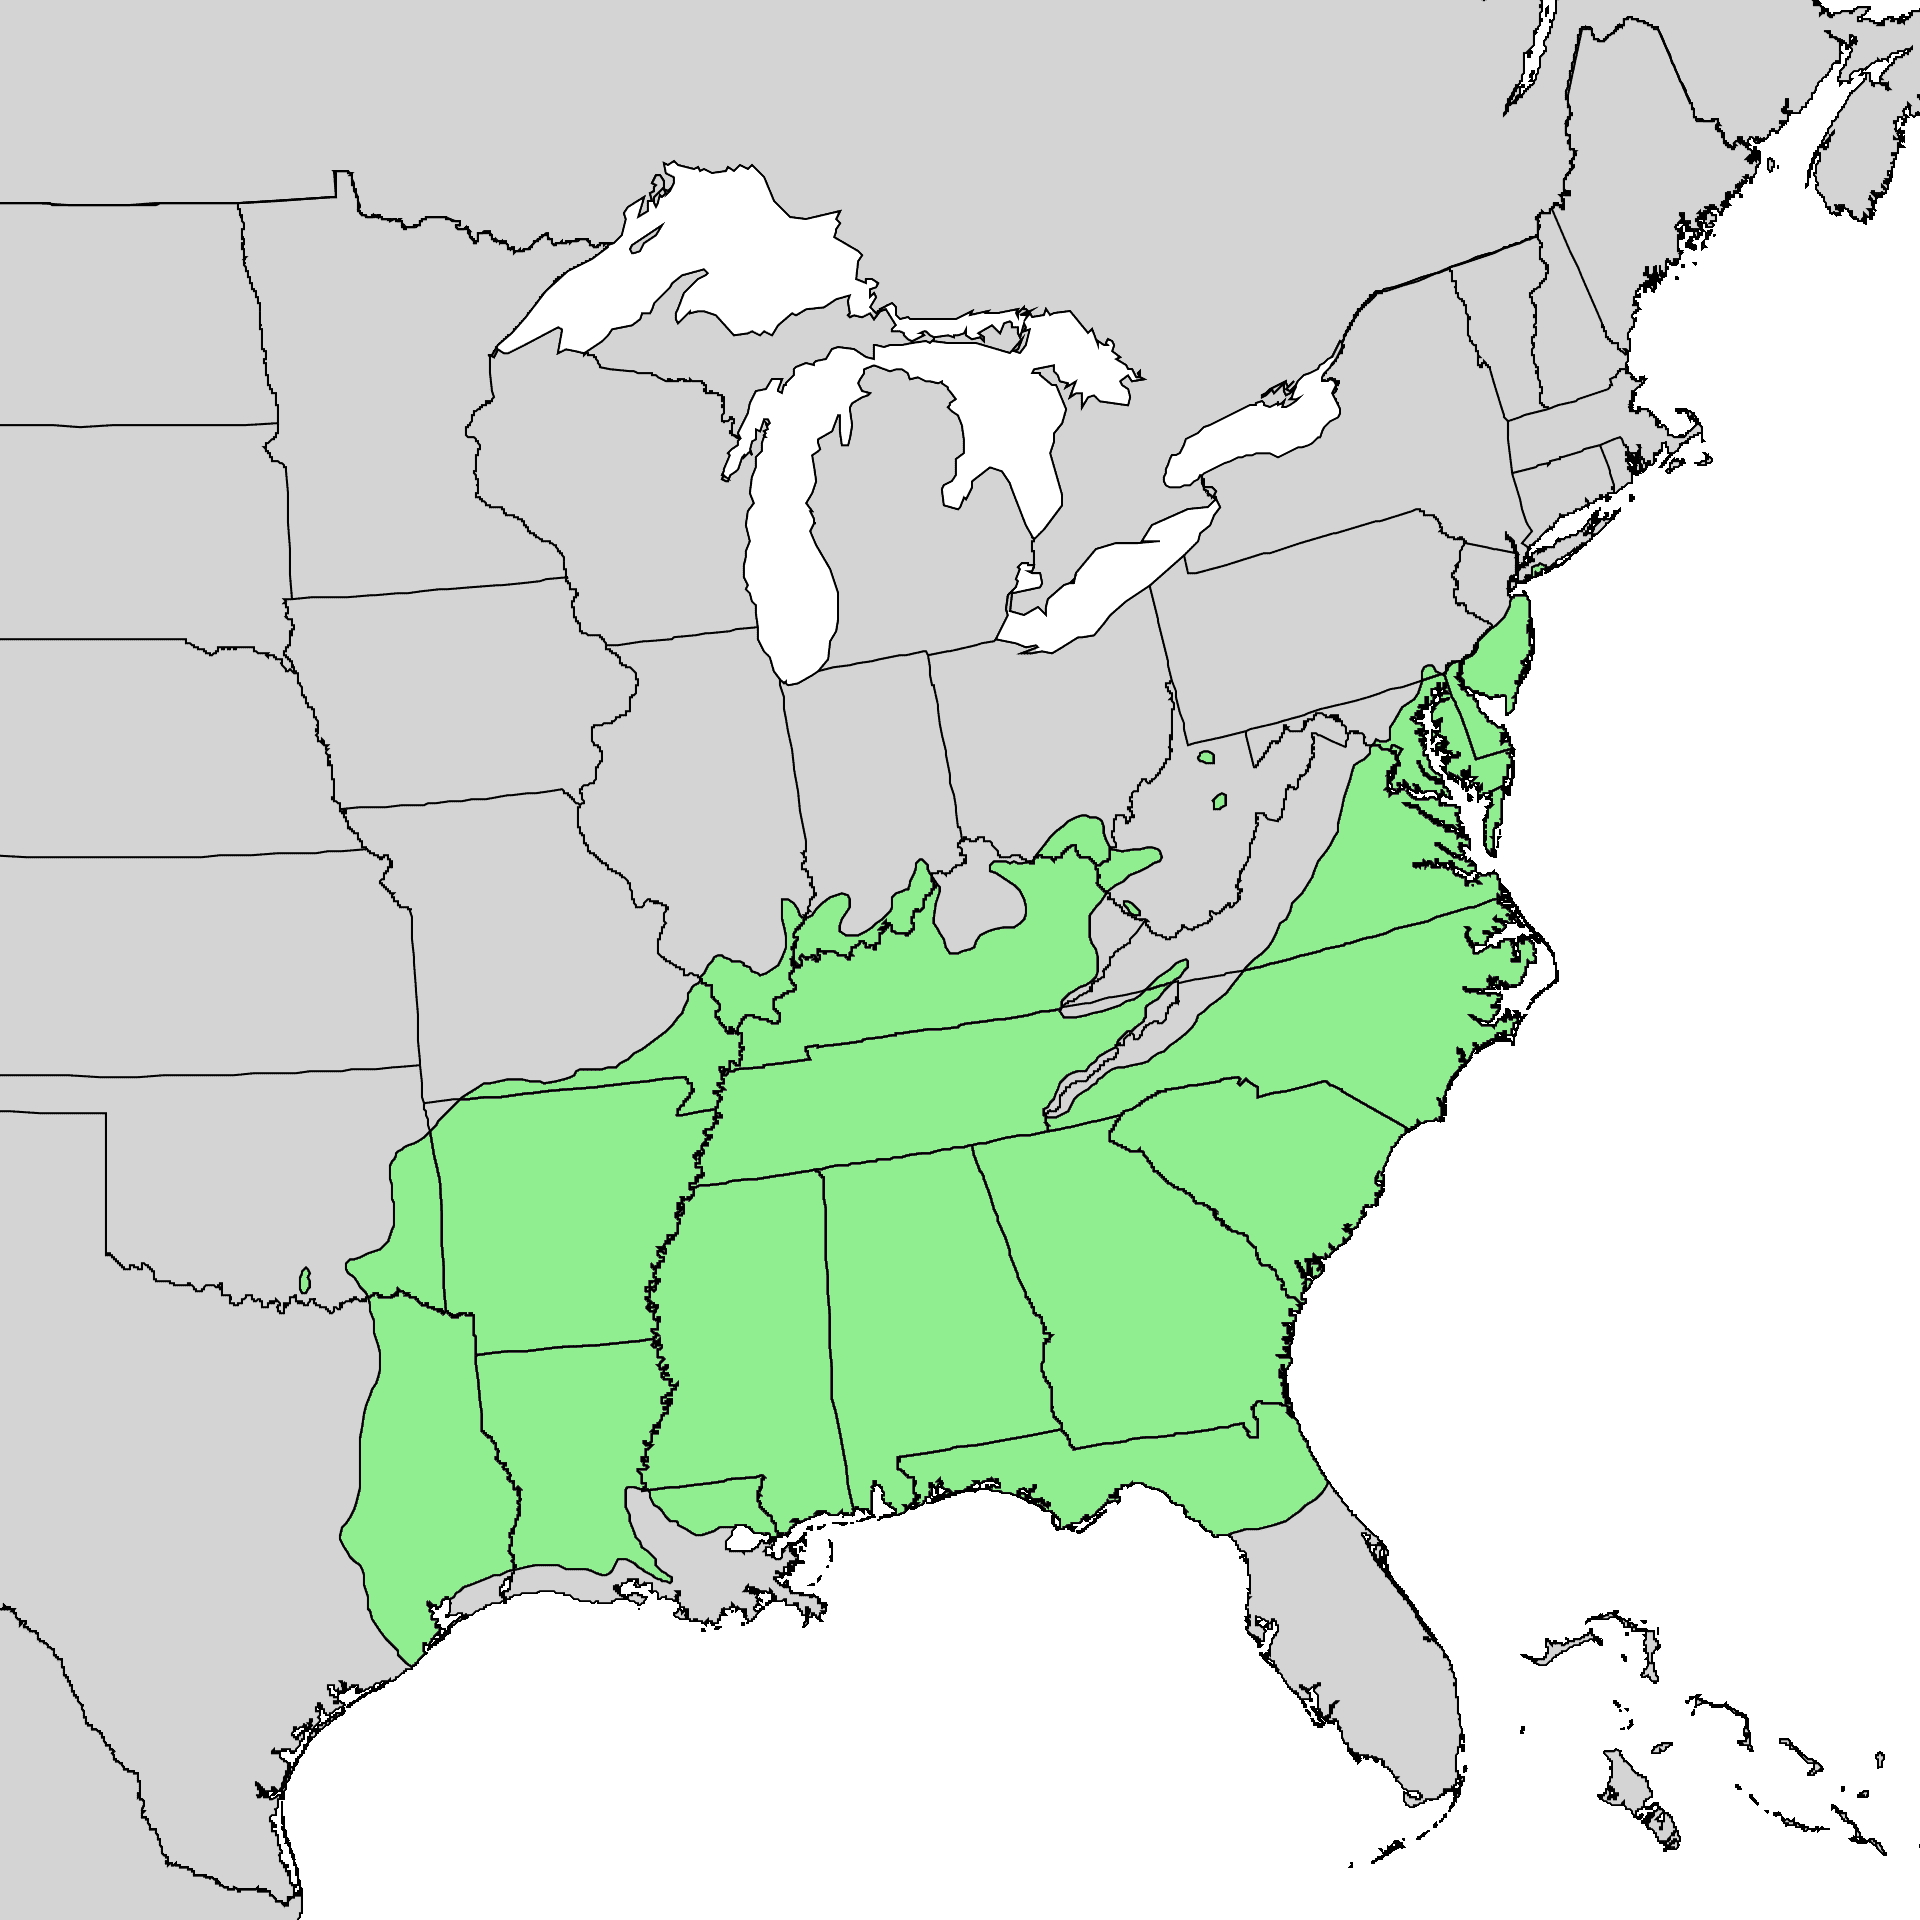 Distribution map of the southern red oak tree